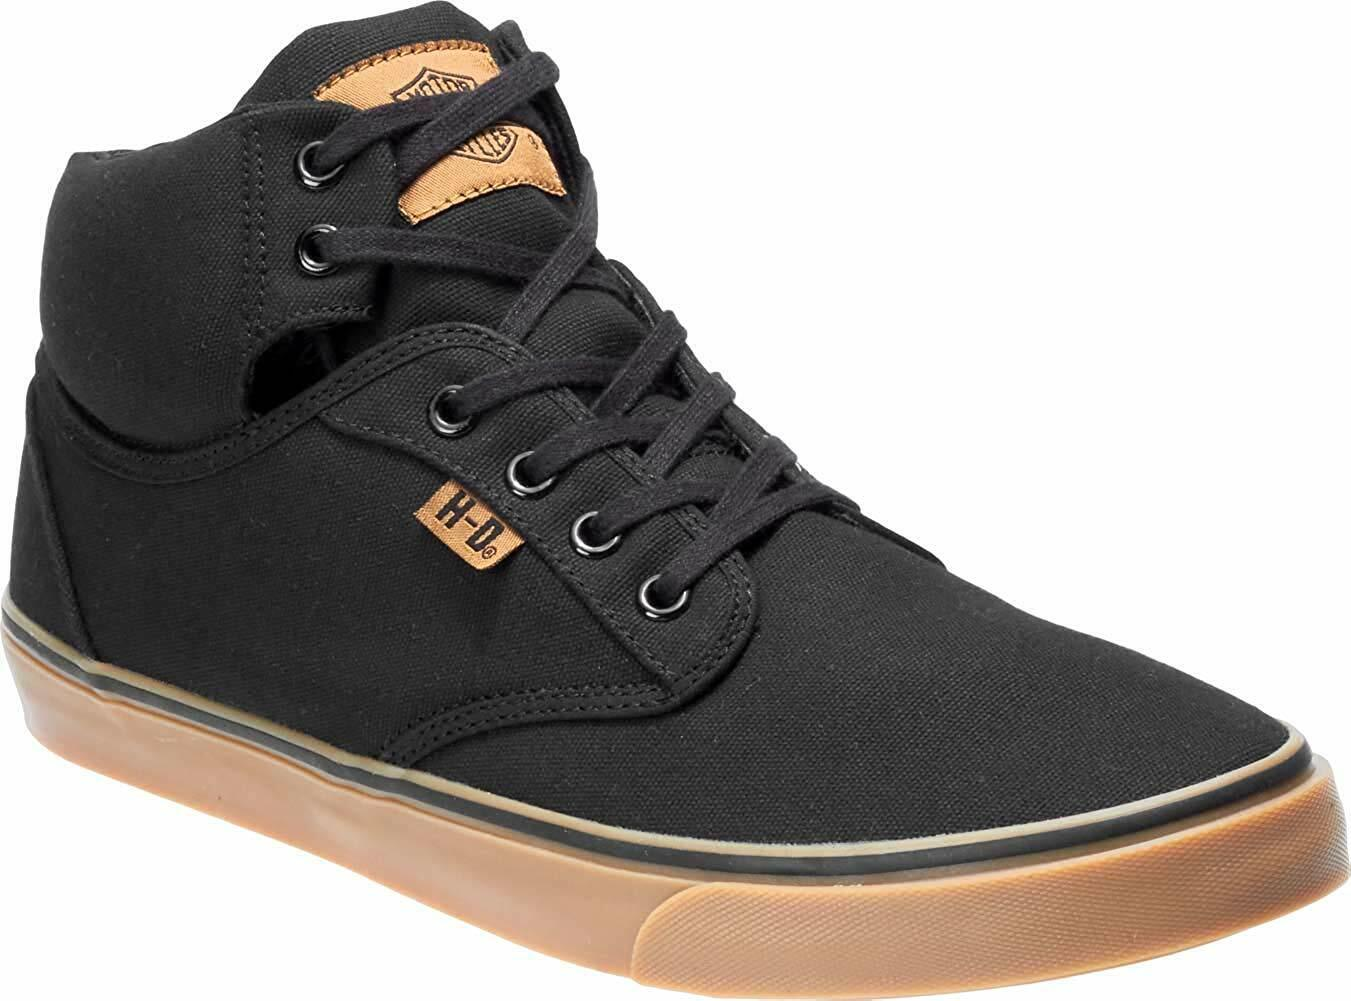 Men Harley-Davidson Wrenford Casual shoes D93544 Black Canvas 100% Original New